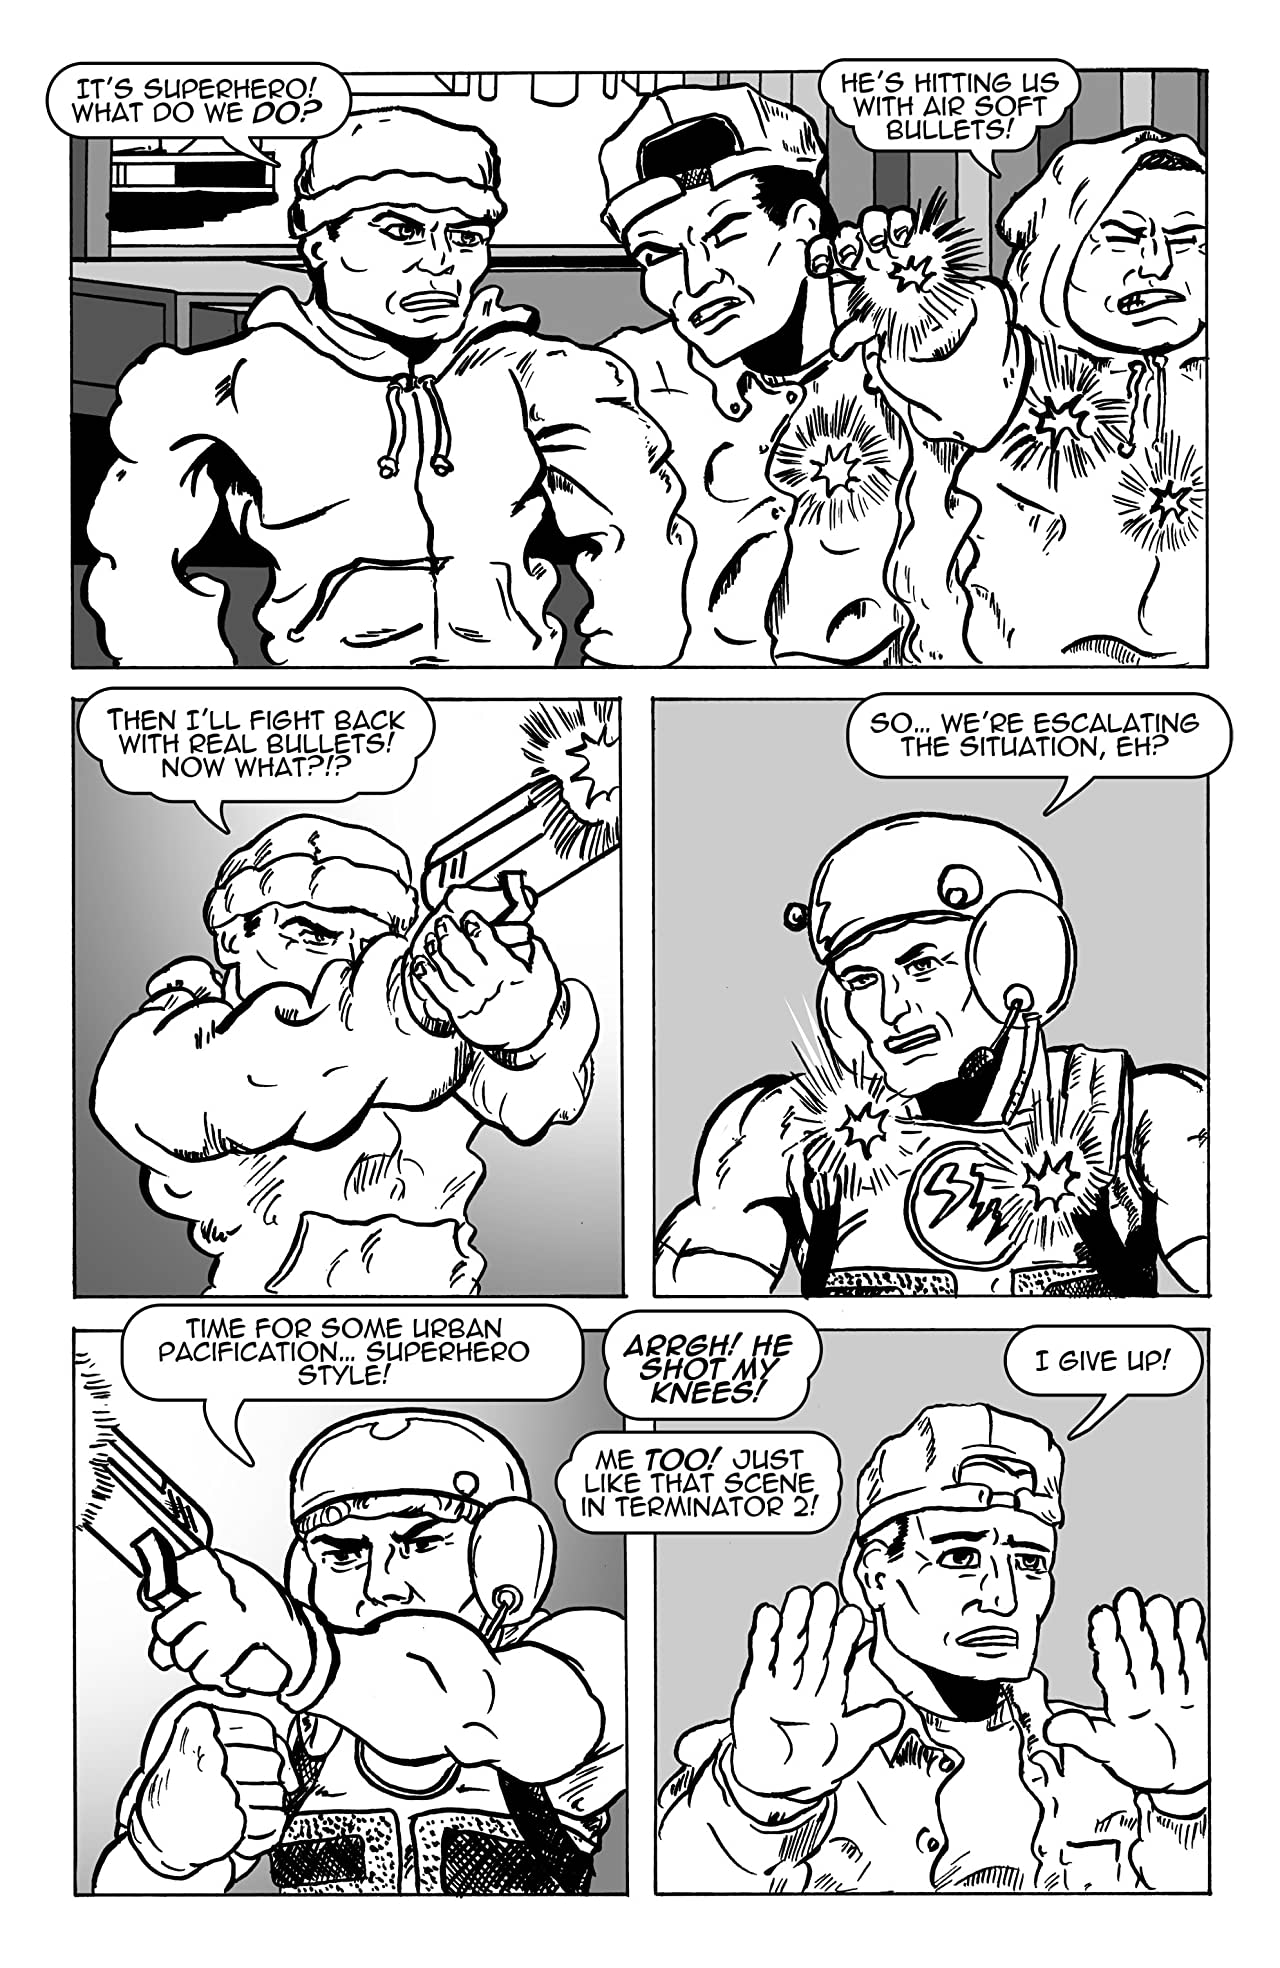 Naked Man Comics #8